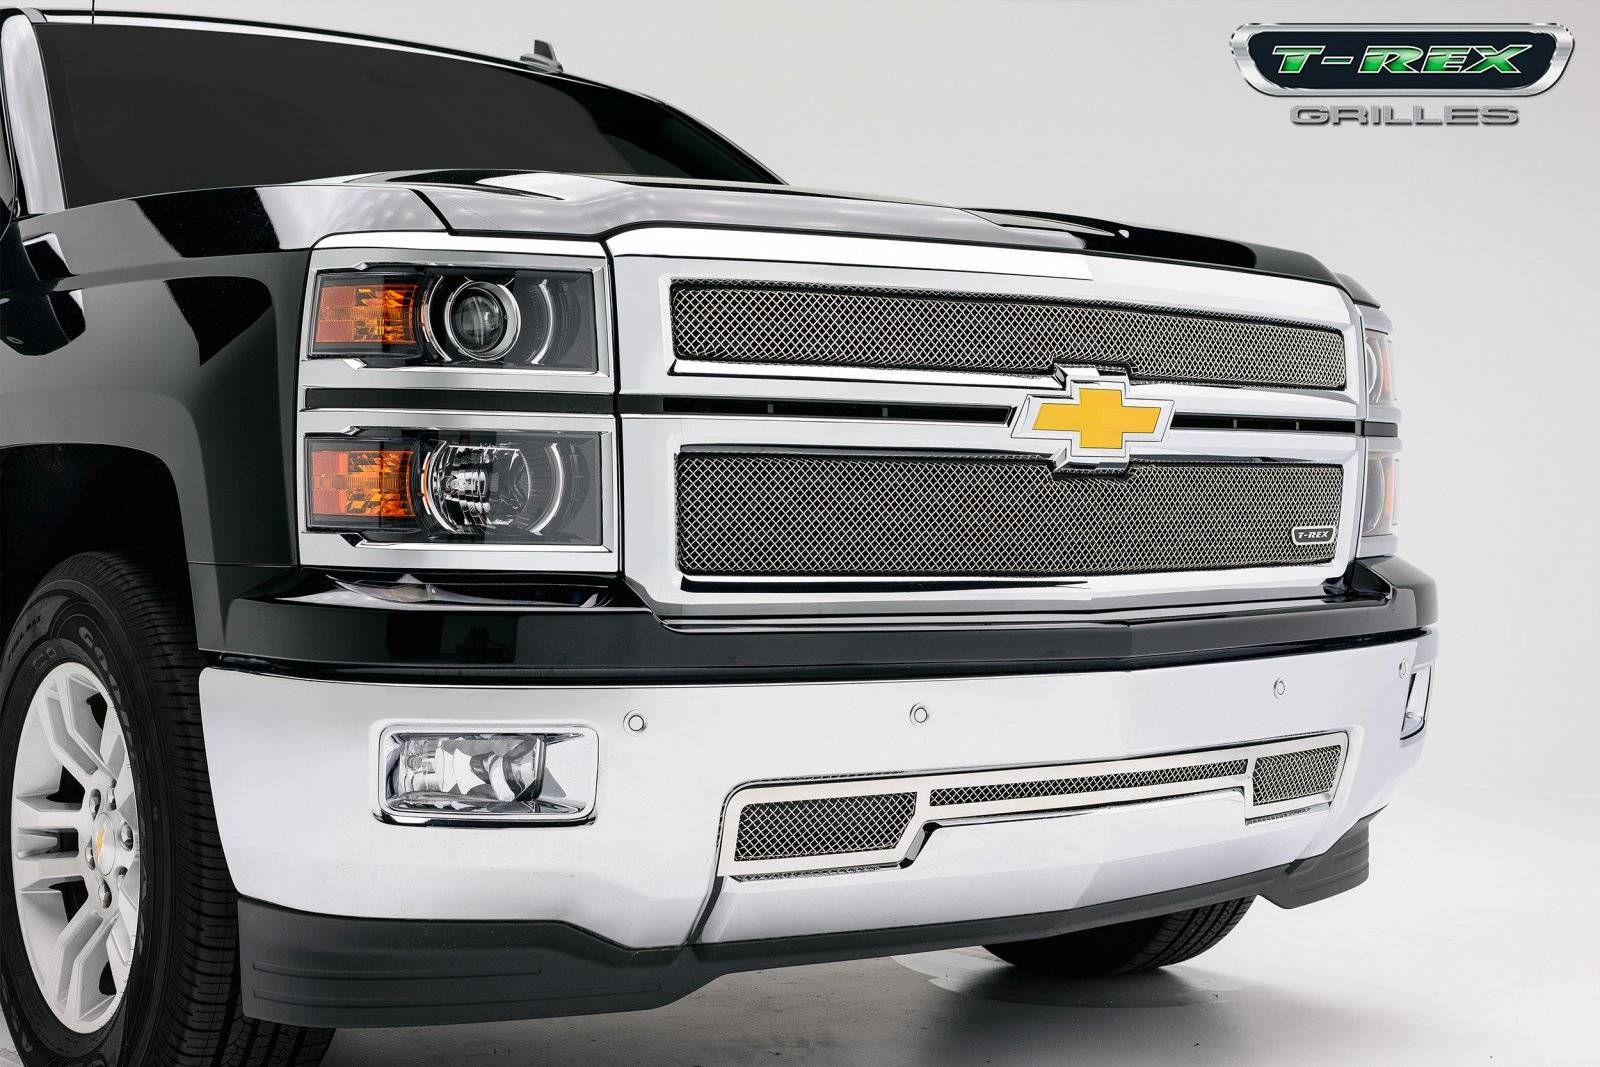 Chevrolet Silverado Sport Series Formed Mesh Grille - Stainless Steel - Triple Chrome Plated - 2 Pc - Pt # 44117